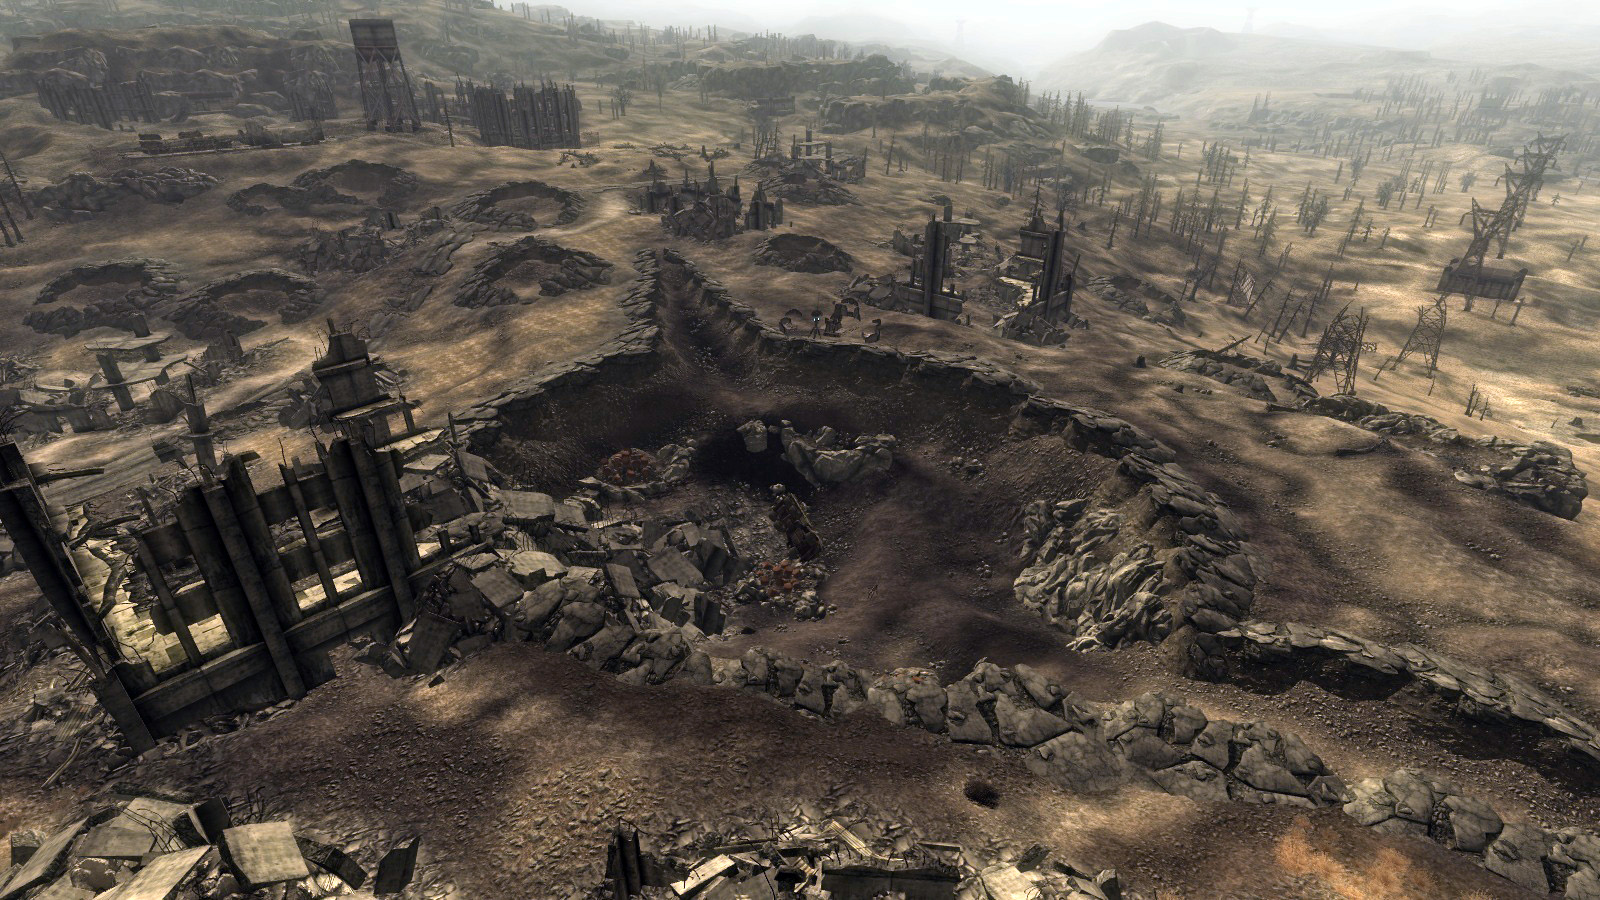 Citaten Seneca Fallout 4 : Bannister crater fallout wiki fandom powered by wikia